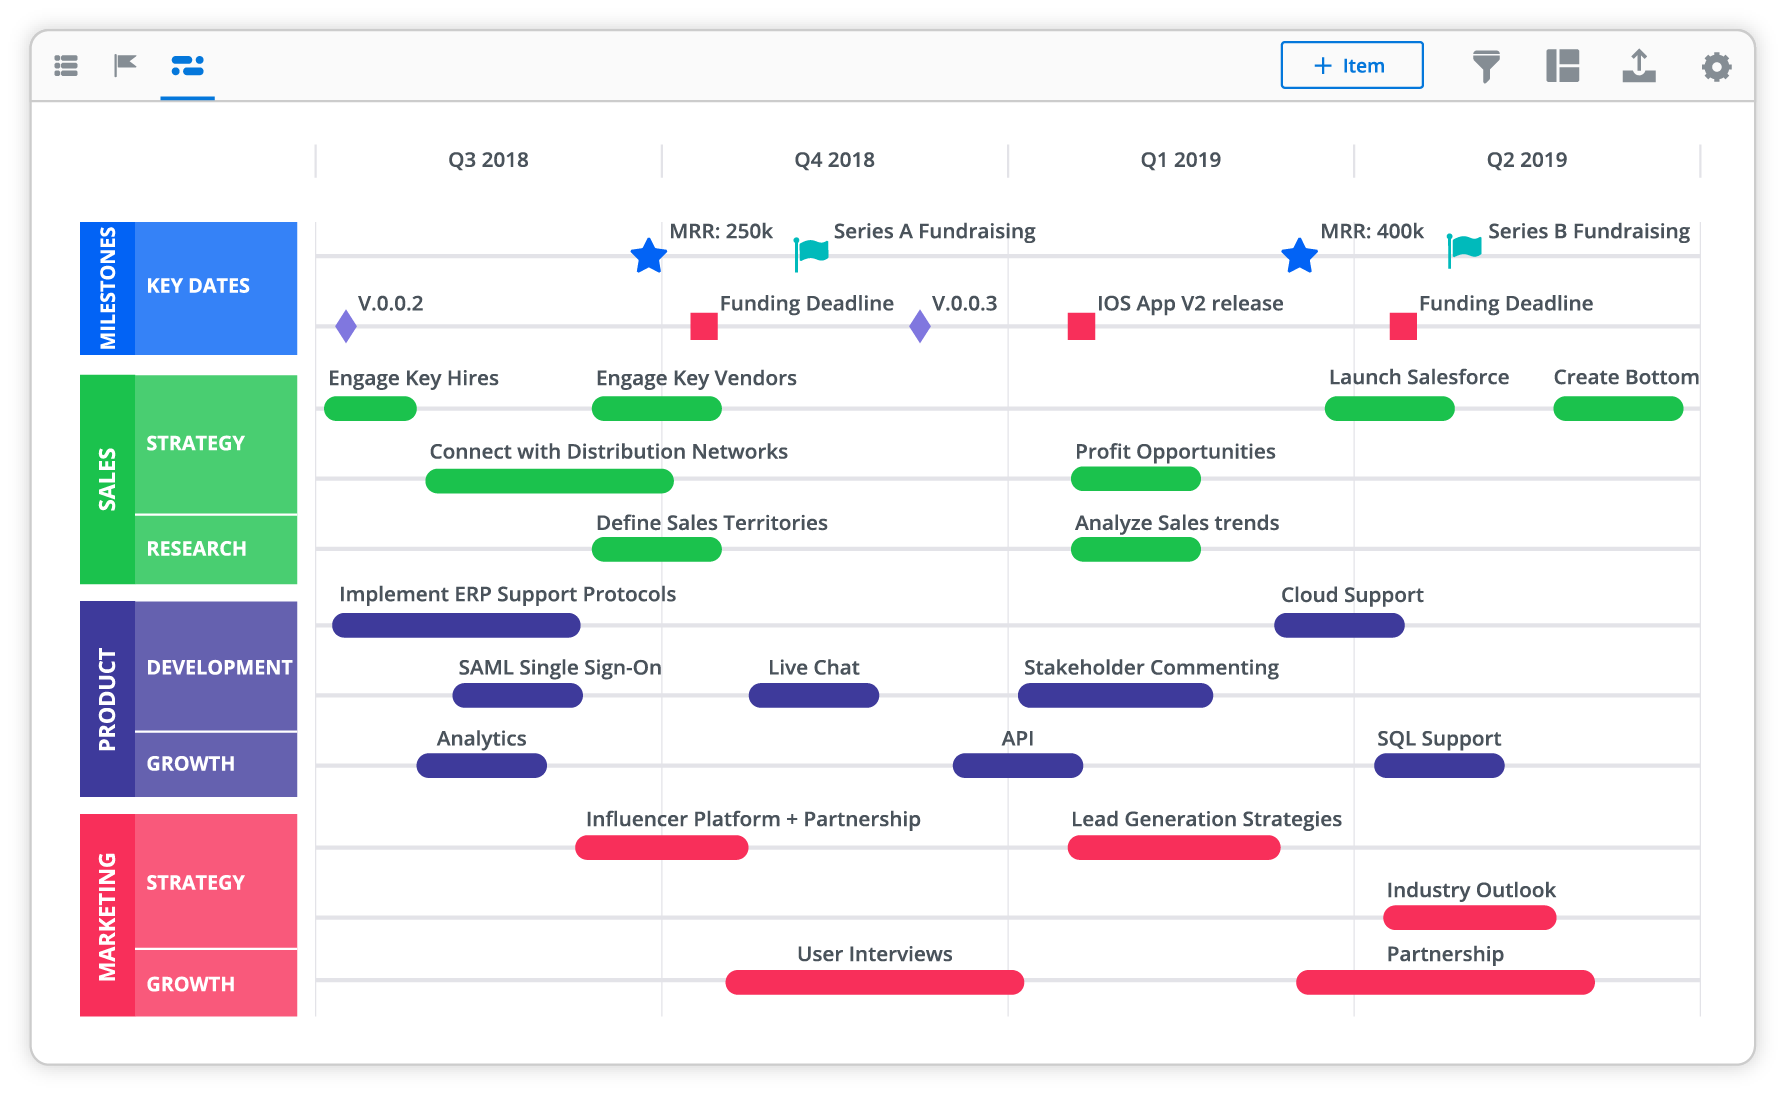 Timeline strategic roadmap Demonstrate the key